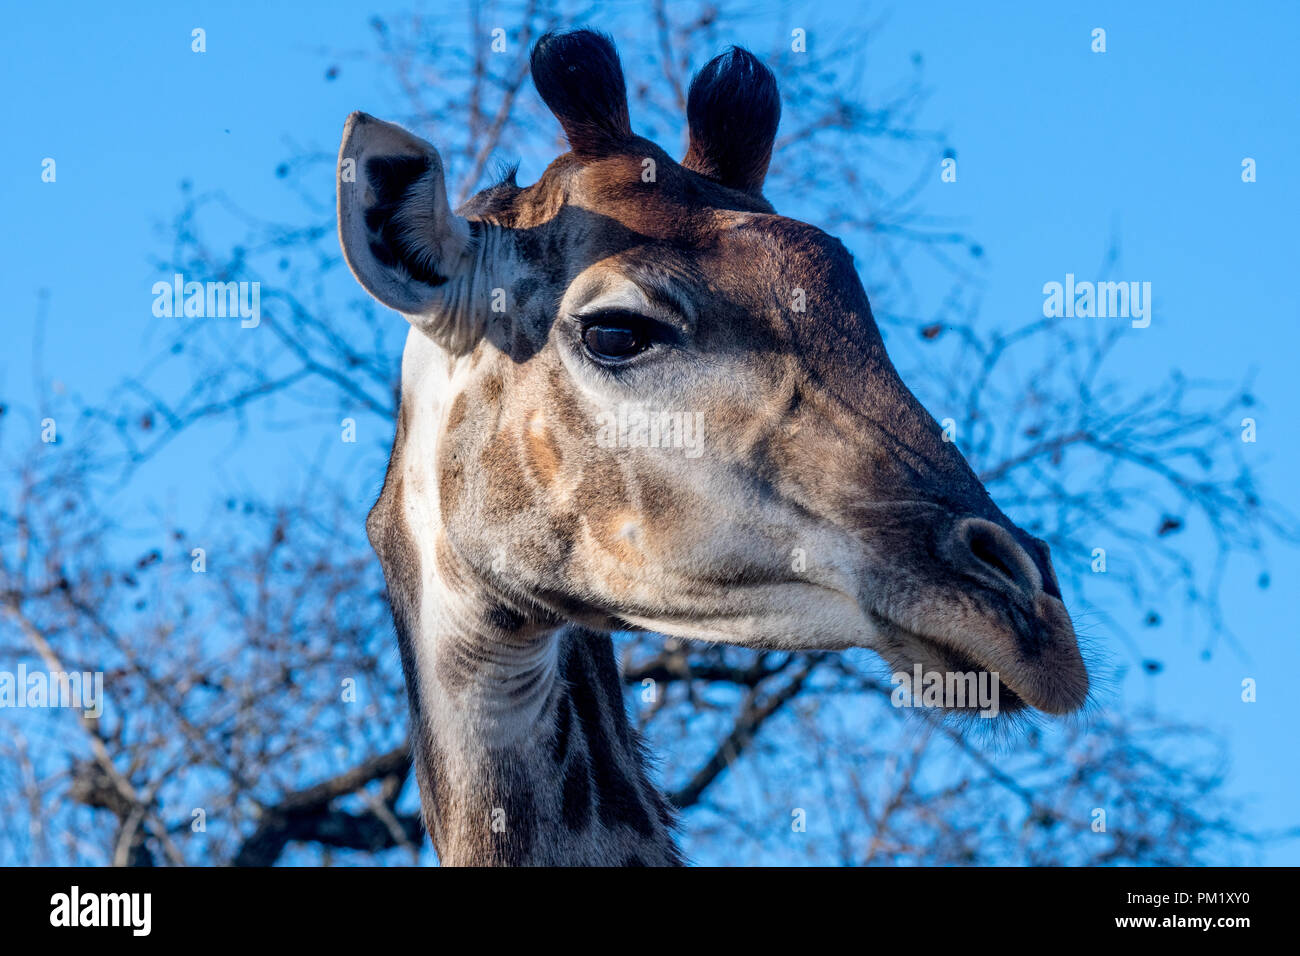 A close up of a giraffe with blue skies, trees and branches in the background. The image was taken in the kruger national park. - Stock Image